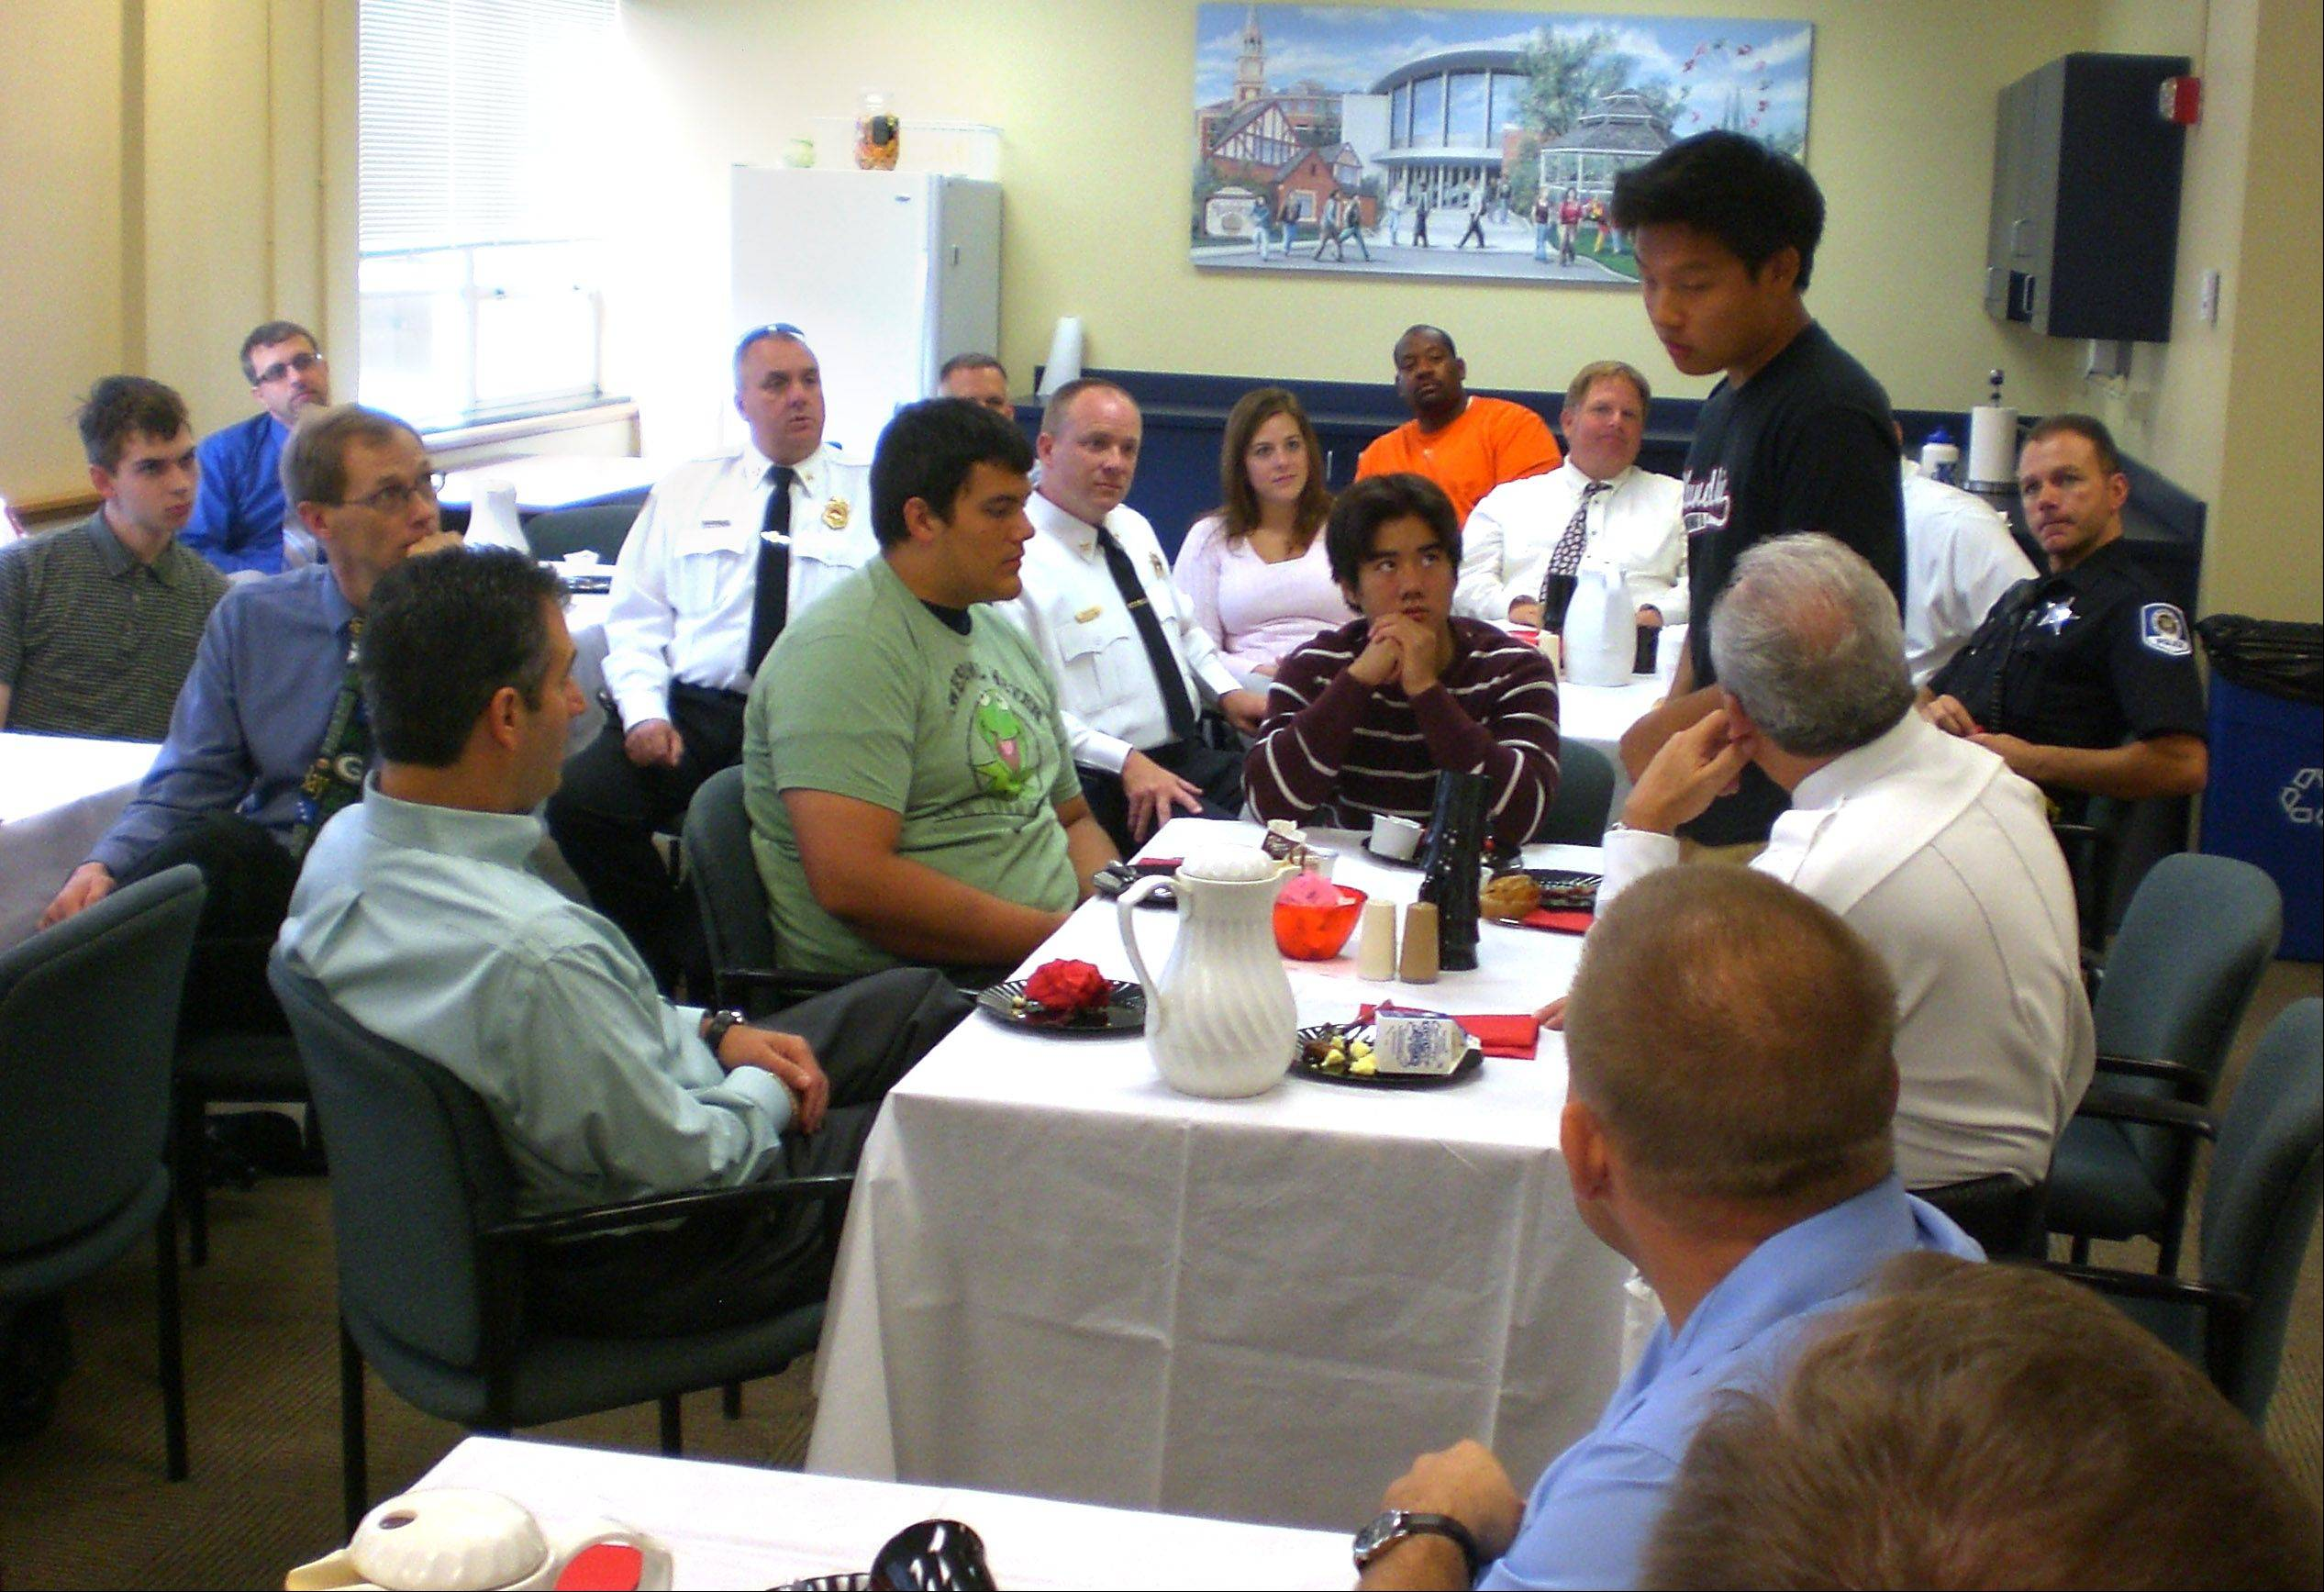 Members of the Mundelein fire and police departments were the guests of honor at Mundelein High School for a breakfast to remember the events of Sept. 11, 2001.